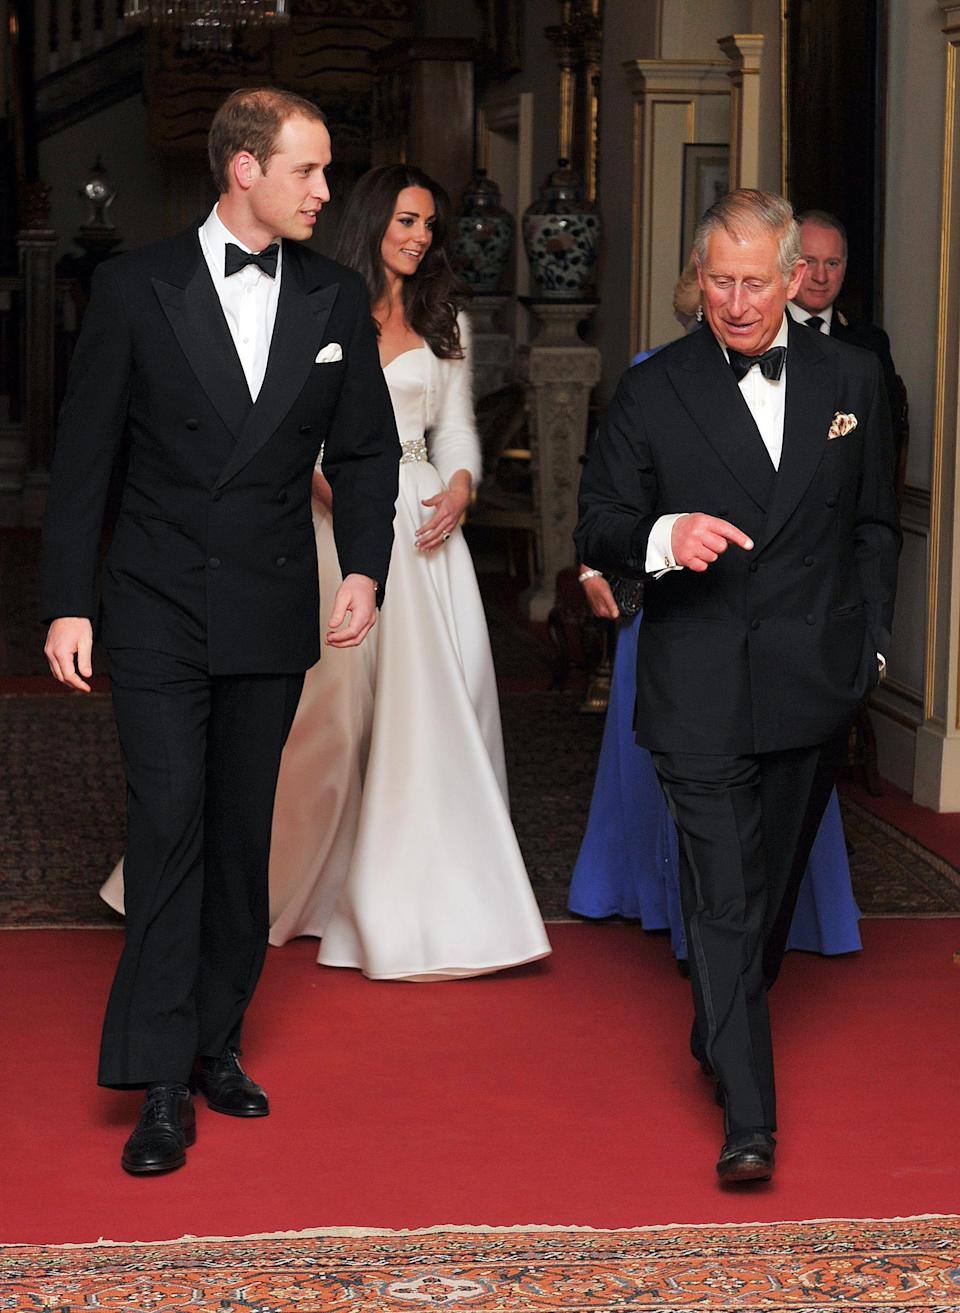 <p>Charles, William and Kate at the evening reception of their wedding in 2011 (PA) </p>